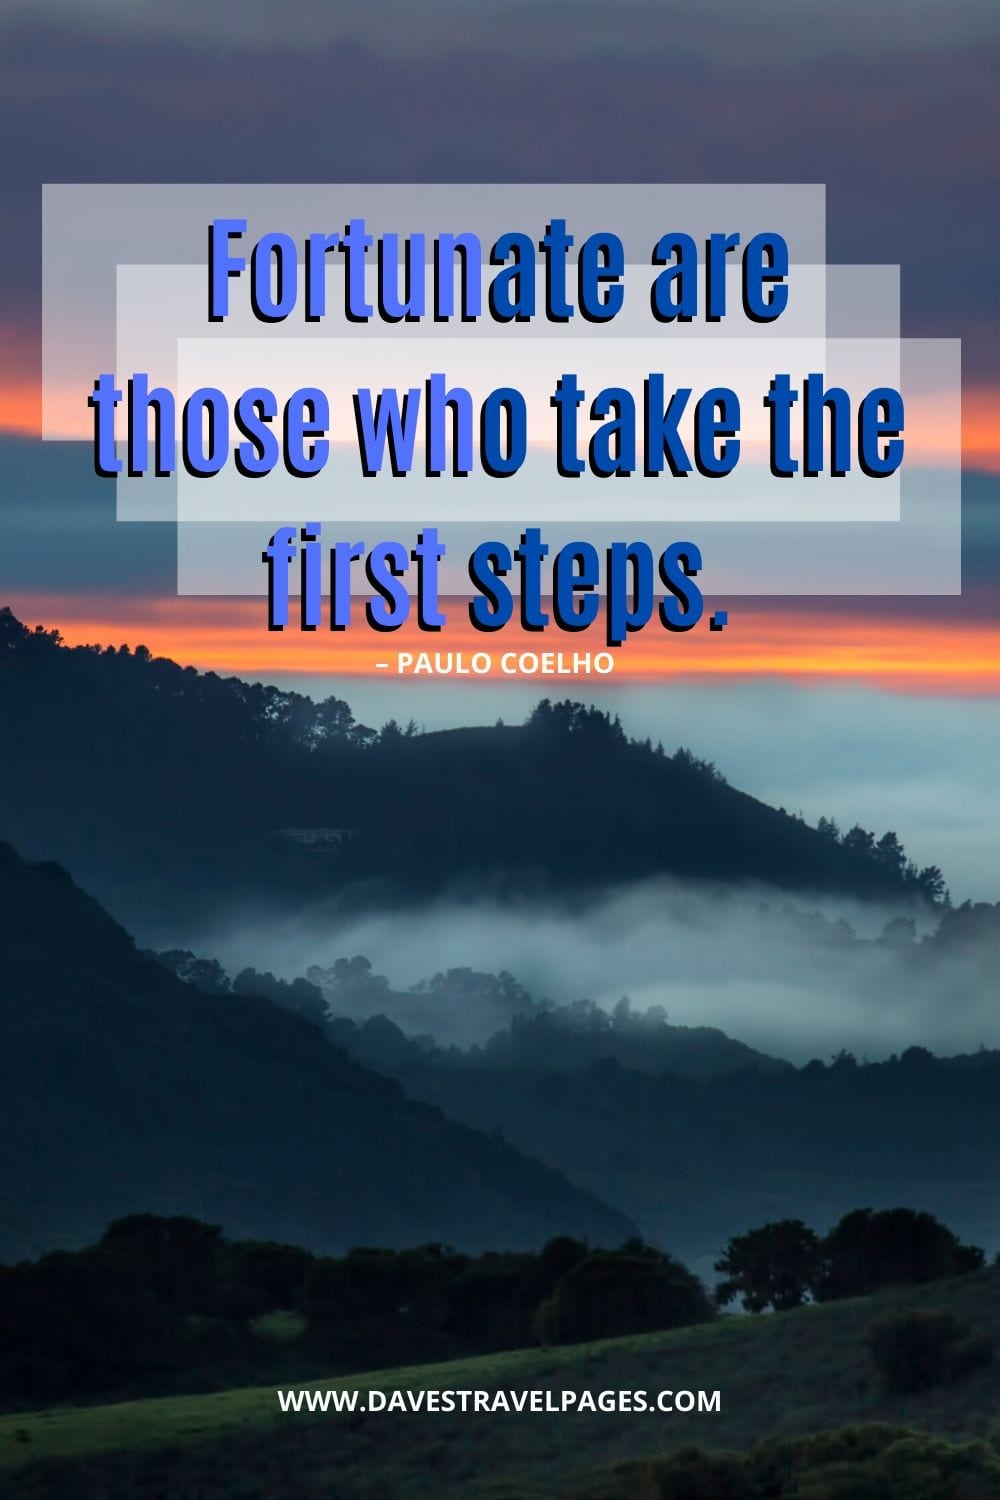 """Fortunate are those who take the first steps."" – Motivational Quote by Paulo Coelho"